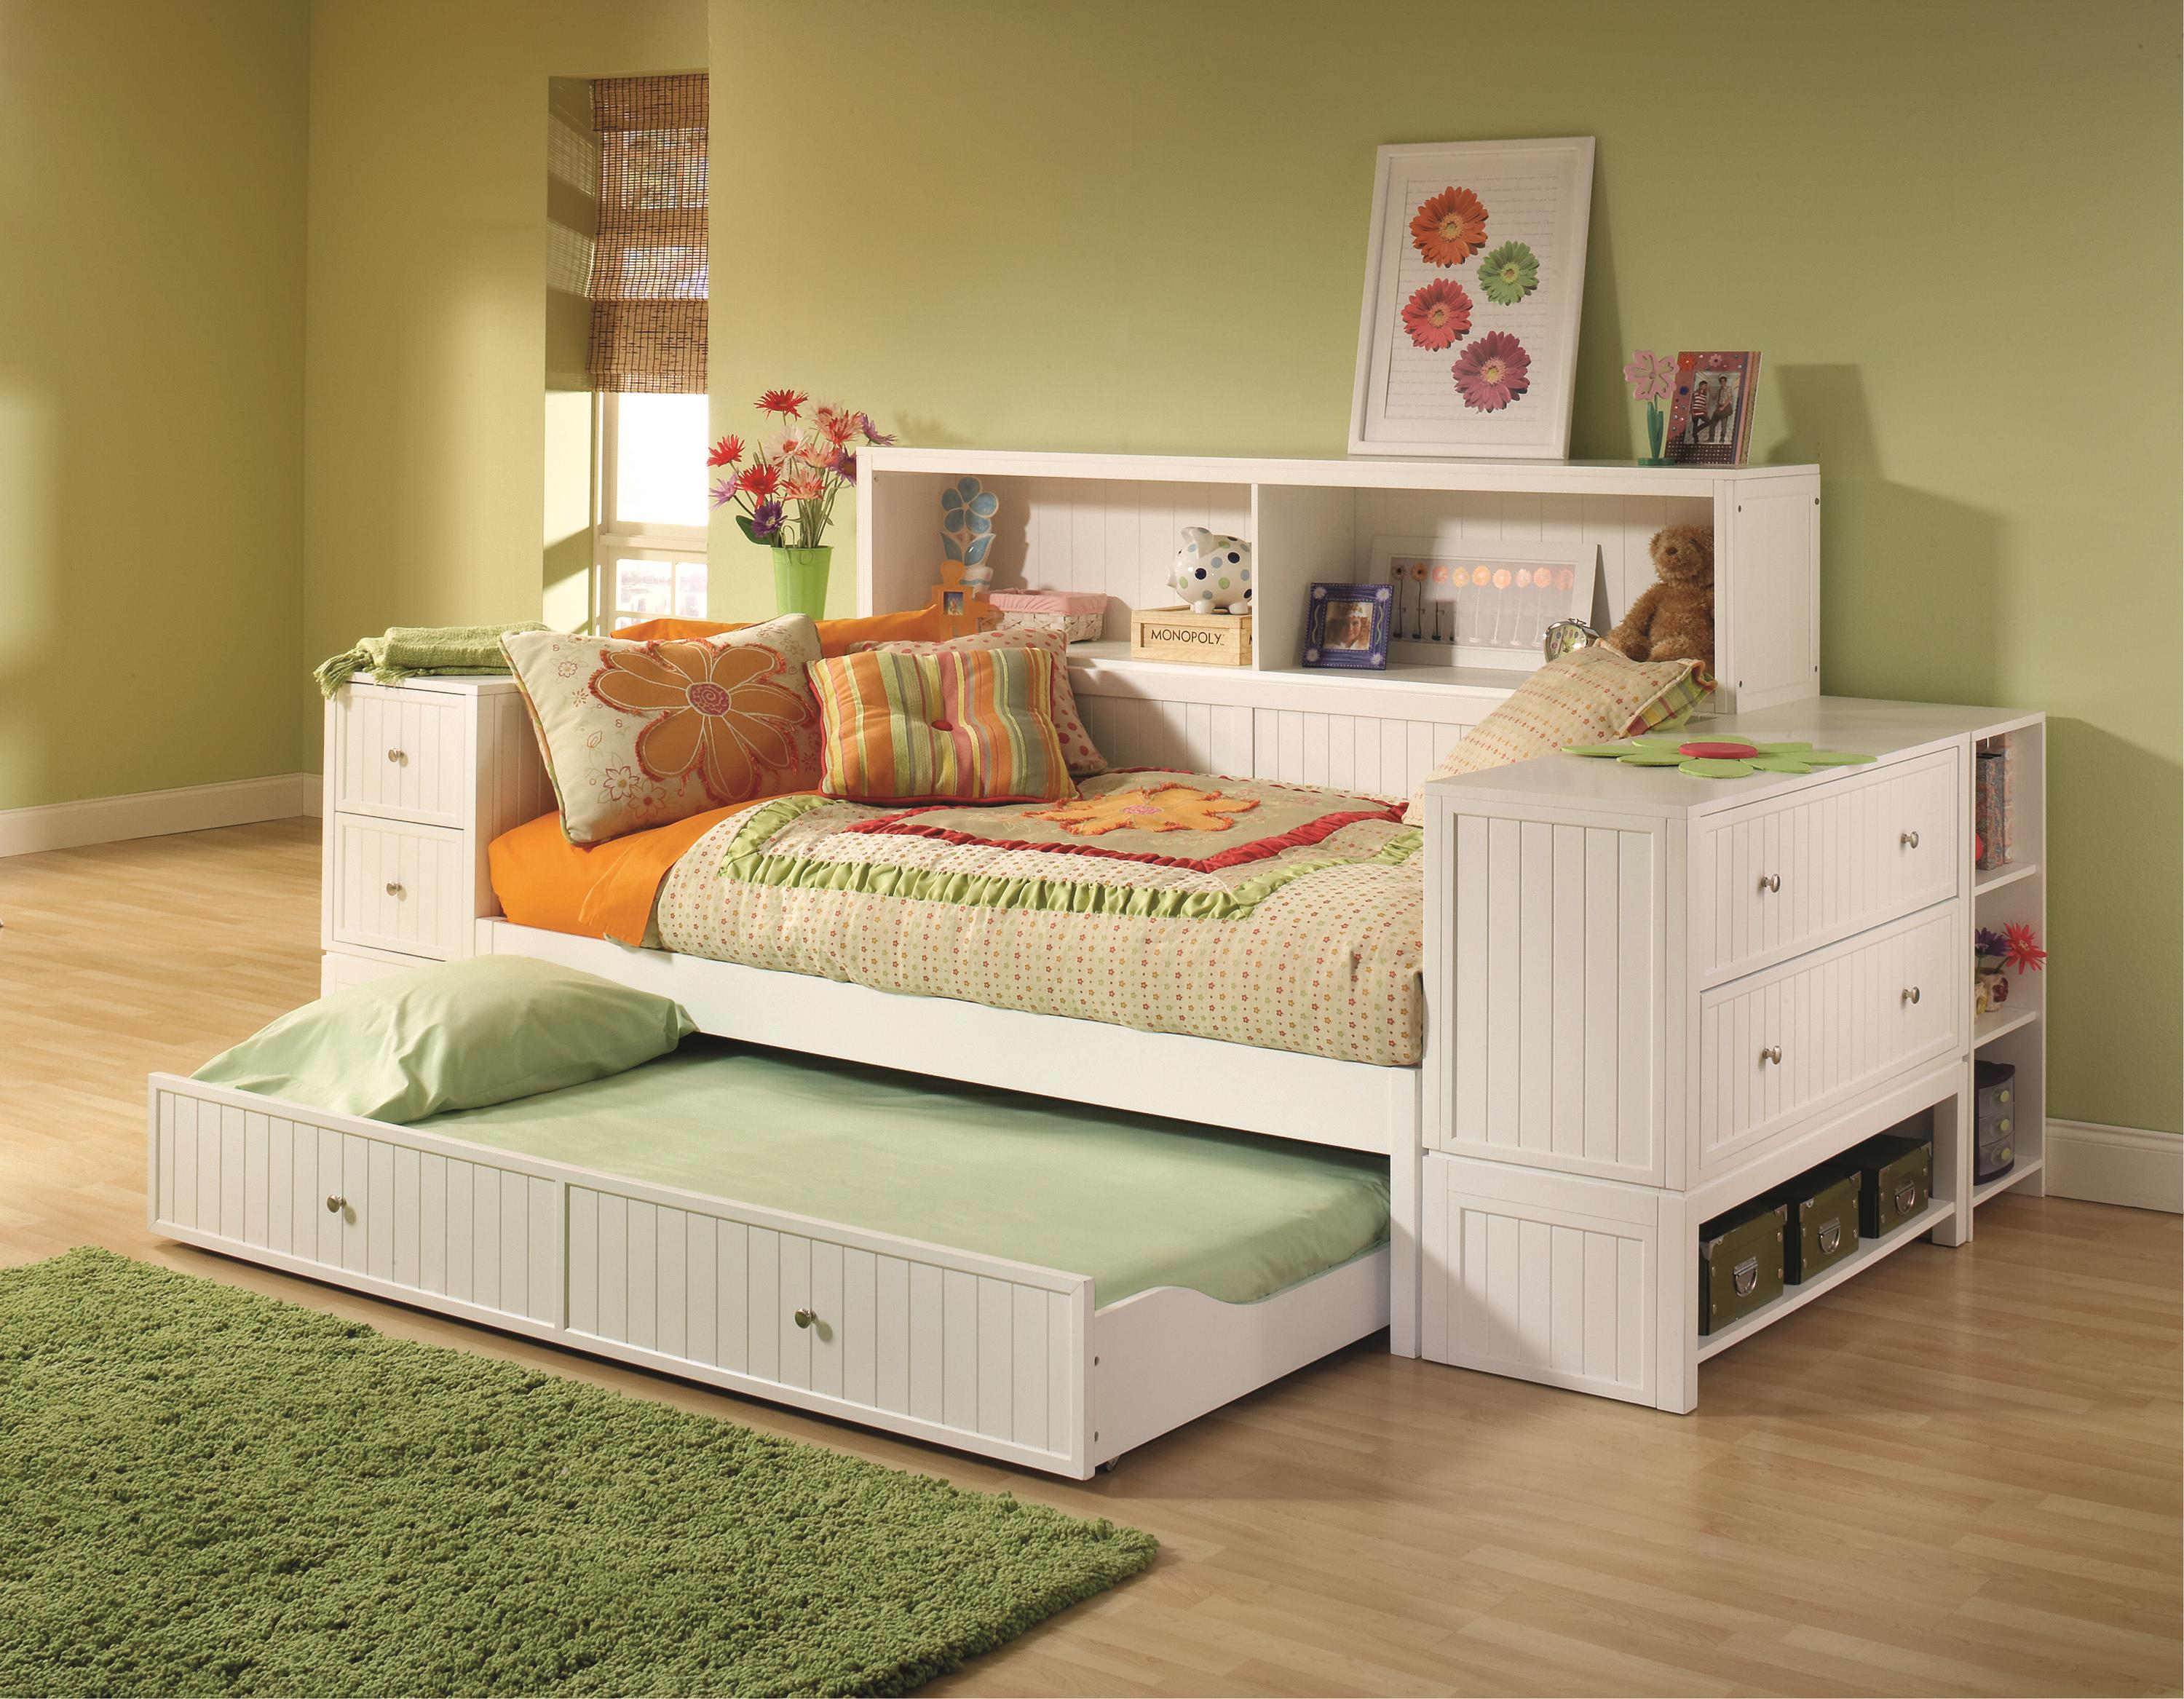 Awesome daybed with storage for small bedroom design with full size daybed with storage